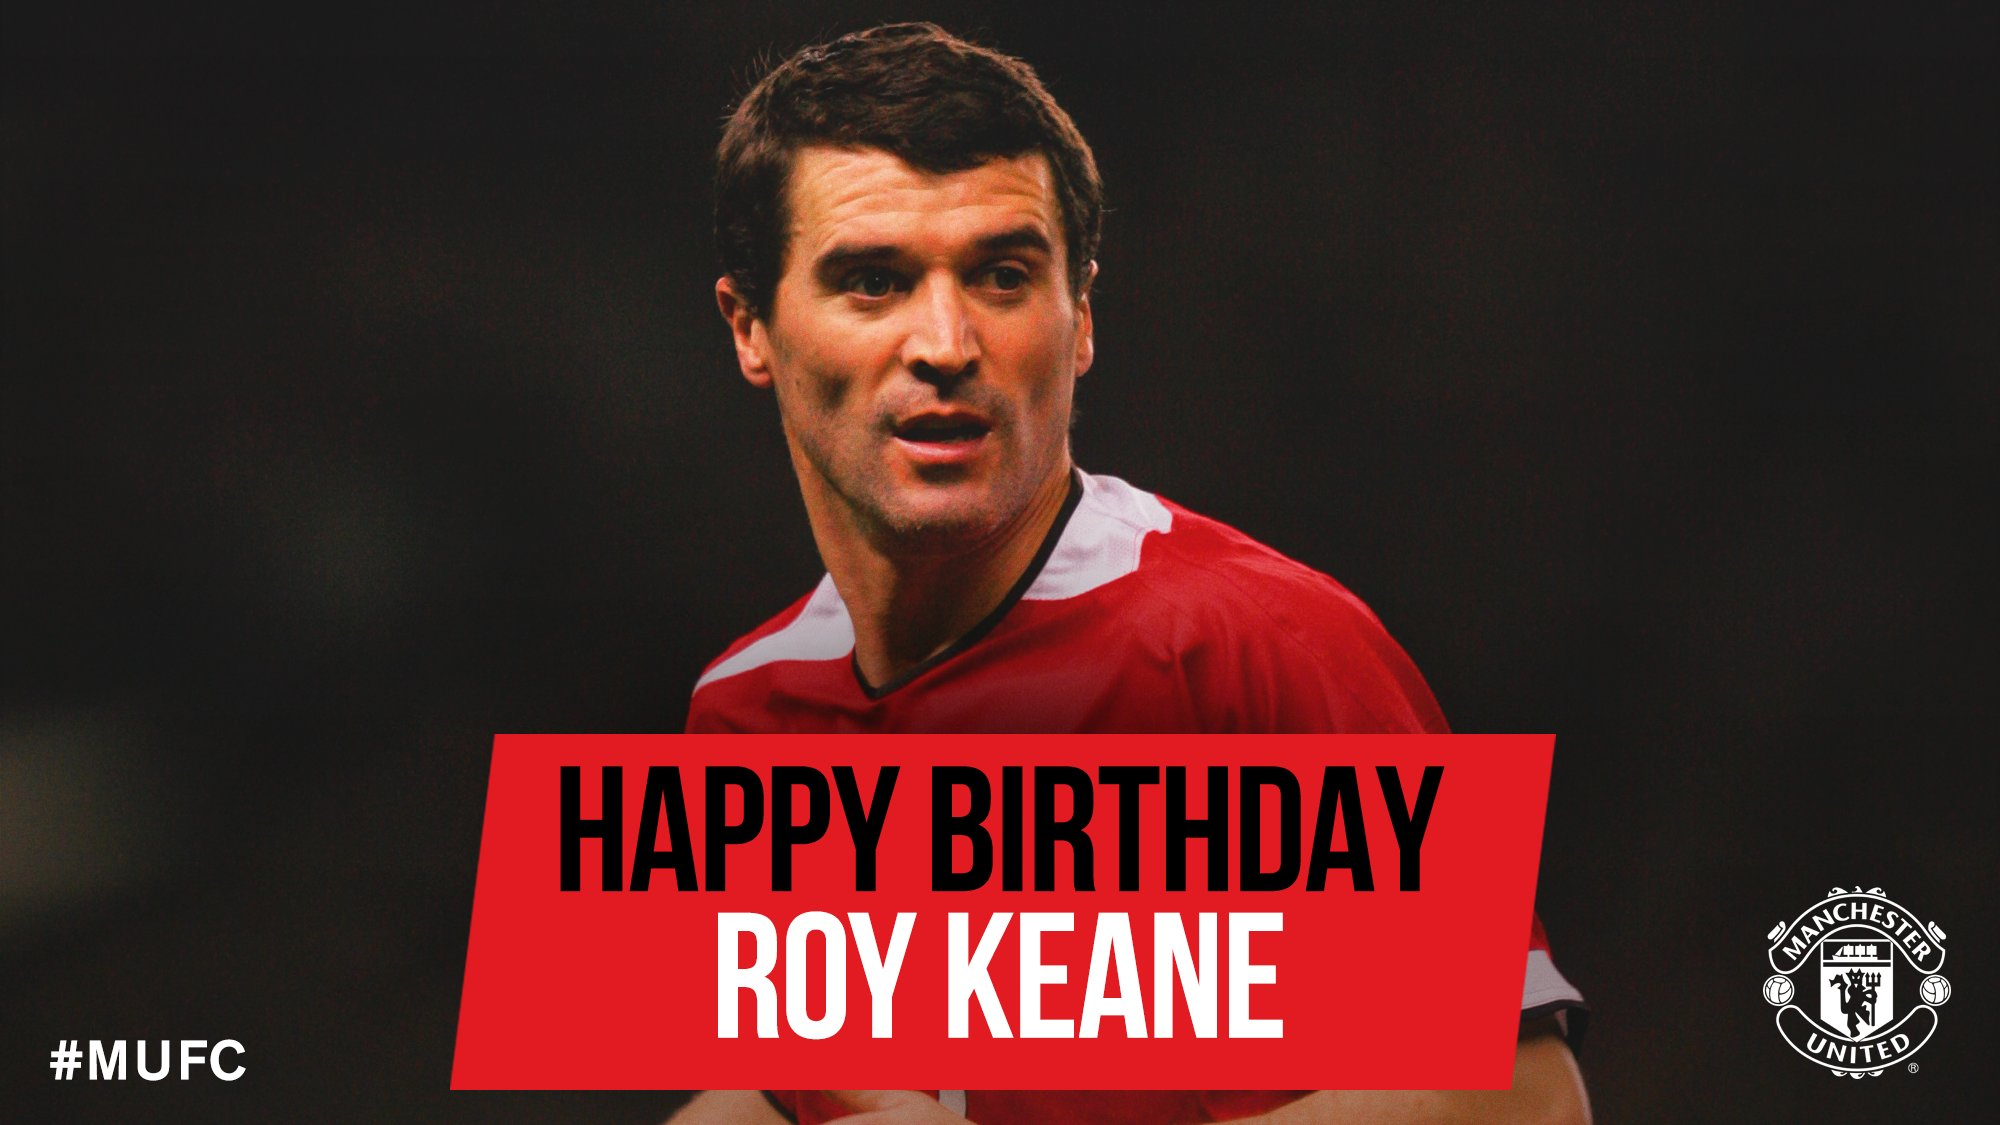 Happy 46th Birthday, Roy Keane!